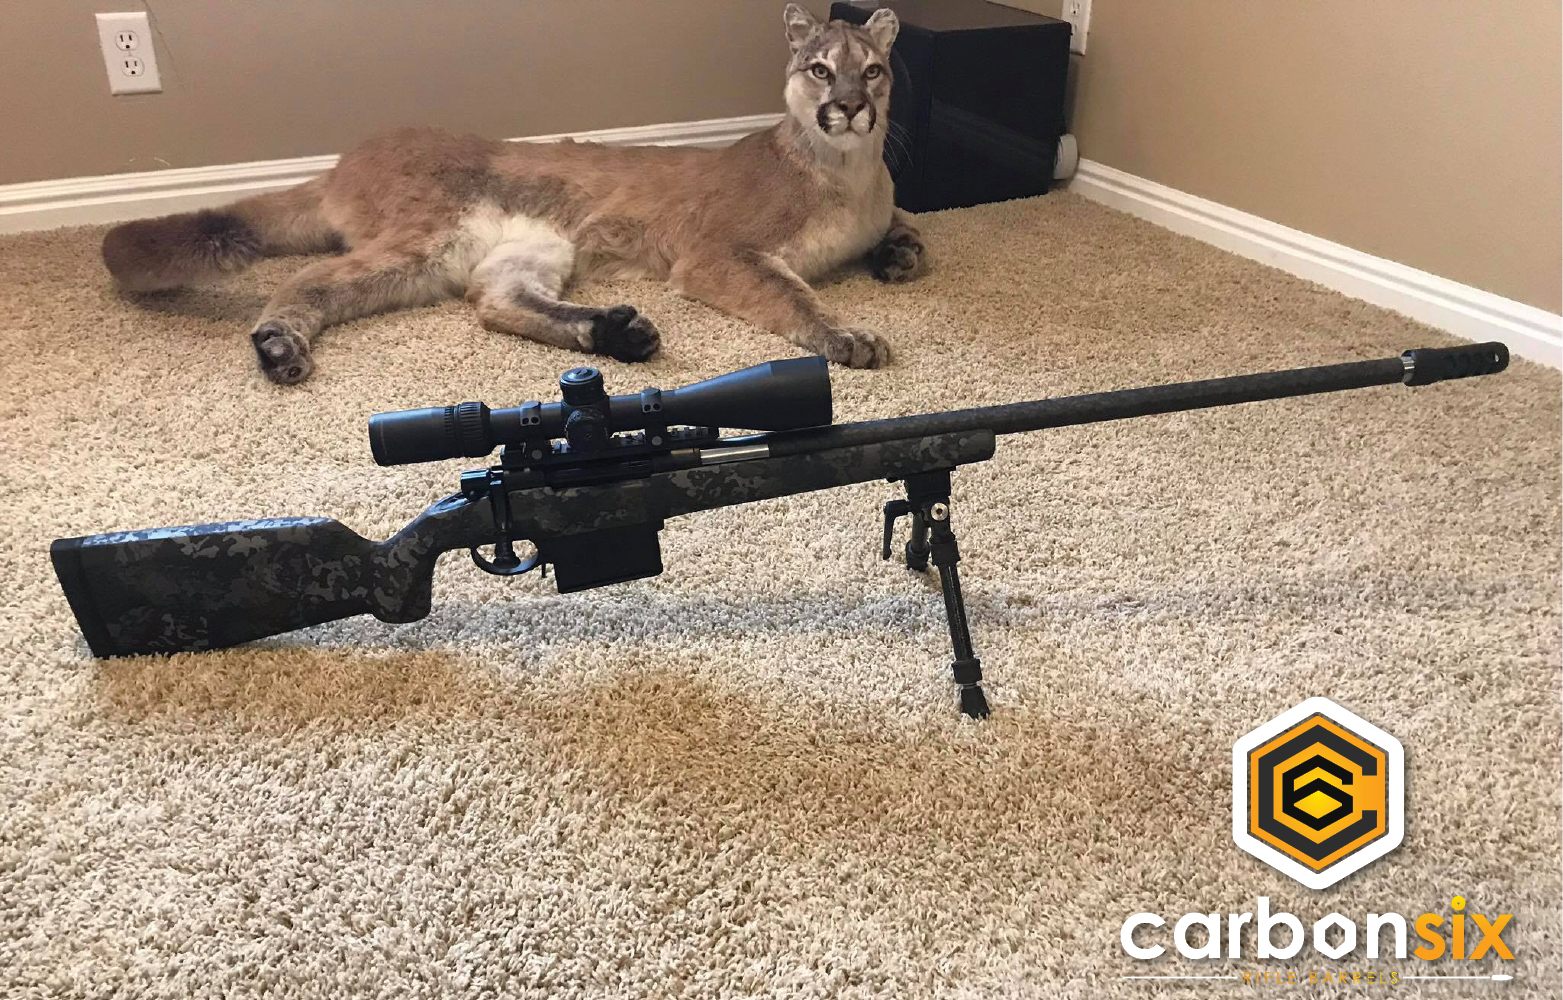 Carbon 6 Rifle Barrel Review - Customer Pictures